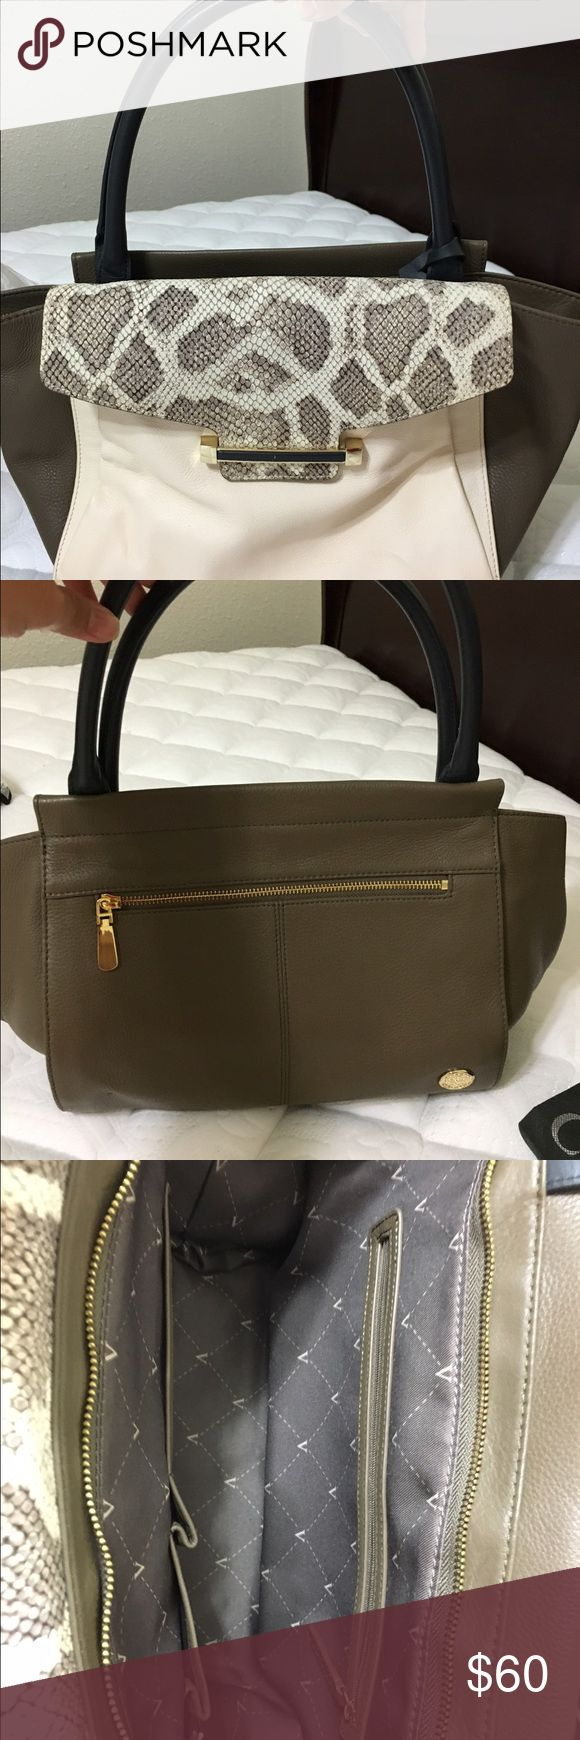 Vince Camuto Medium size bag Vince Camuto medium size bag.  Leather.  Gently used.  Only small minor stains that can be wipe clean easily as shown in picture.  Comes with dust bag. Vince Camuto Bags Satchels